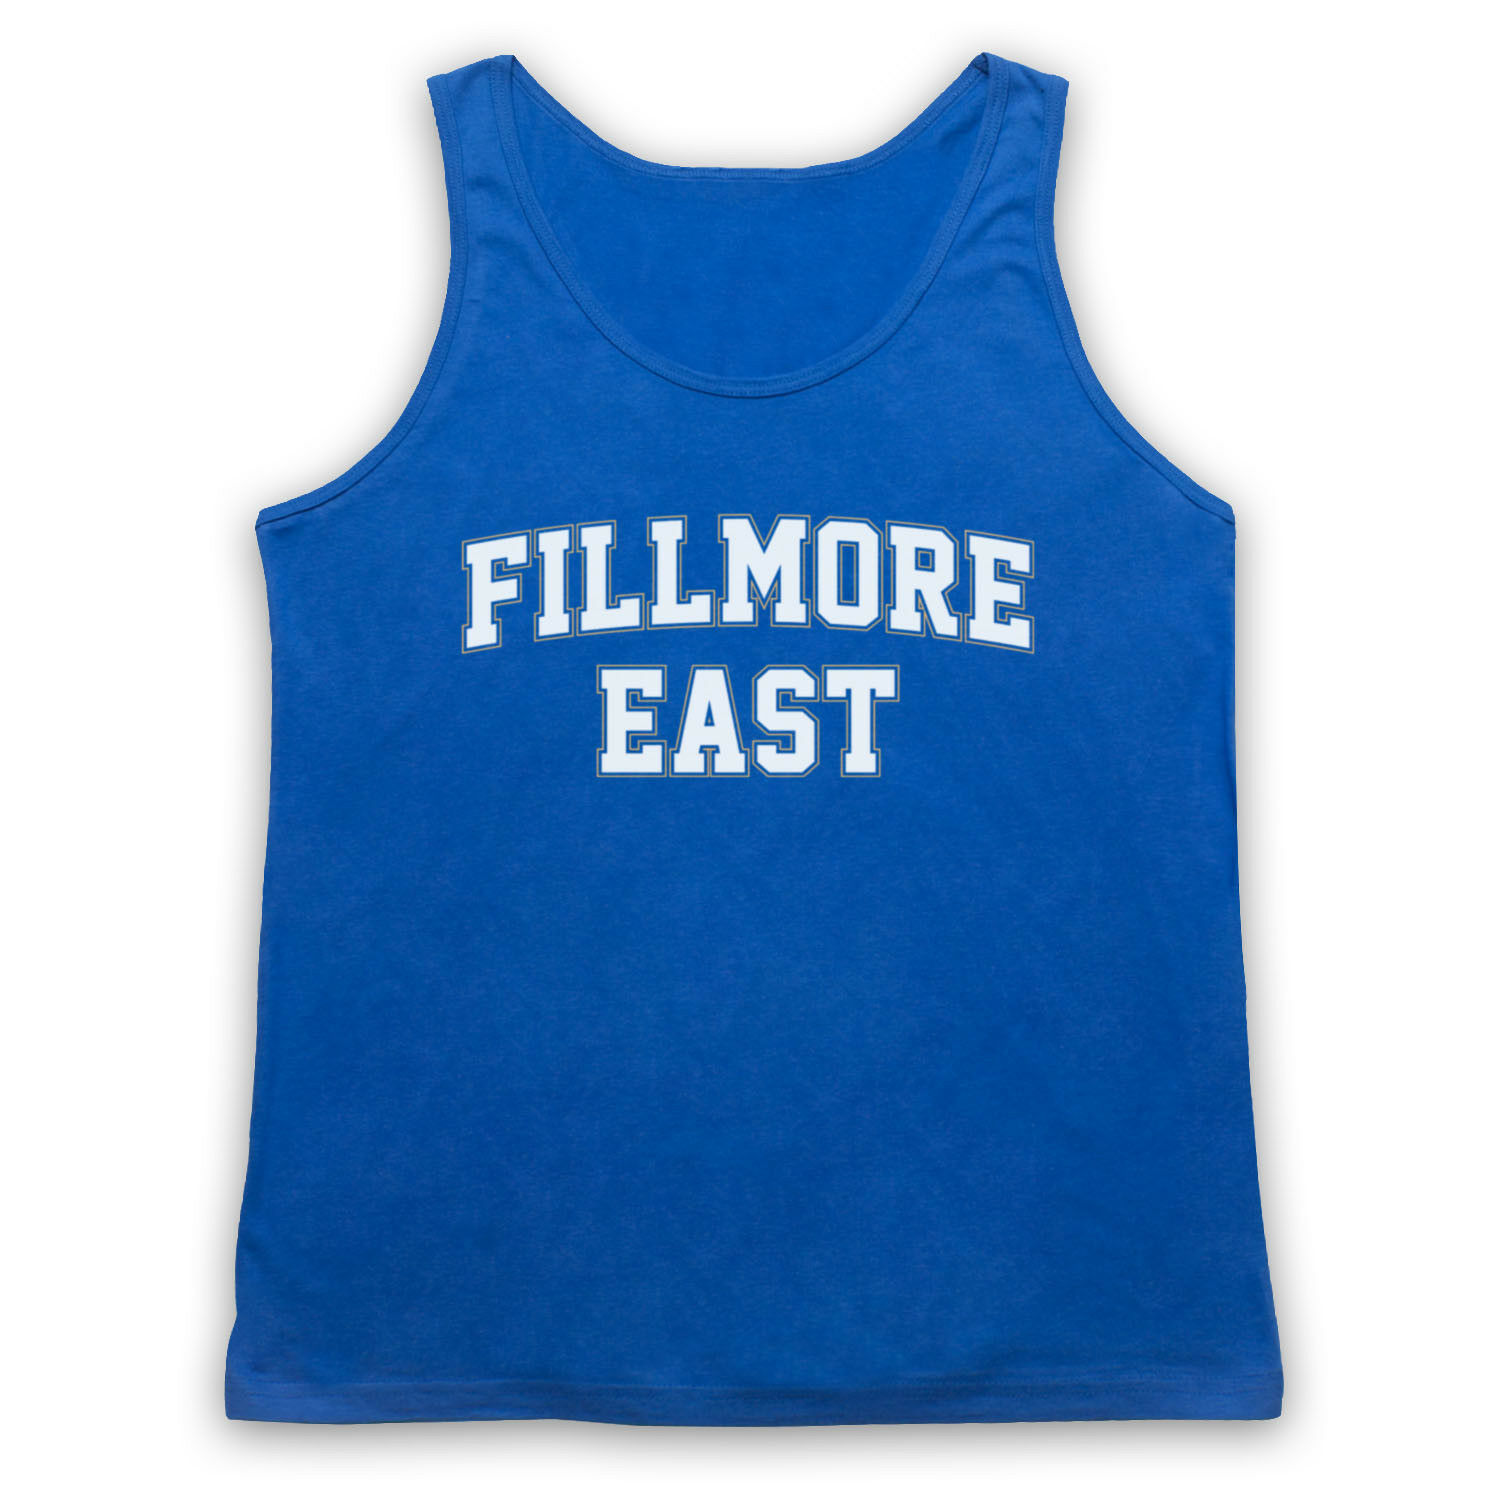 Fillmore East Officieux légendaire lieu New York NYC NYC York adultes Vest Tank Top b856f5